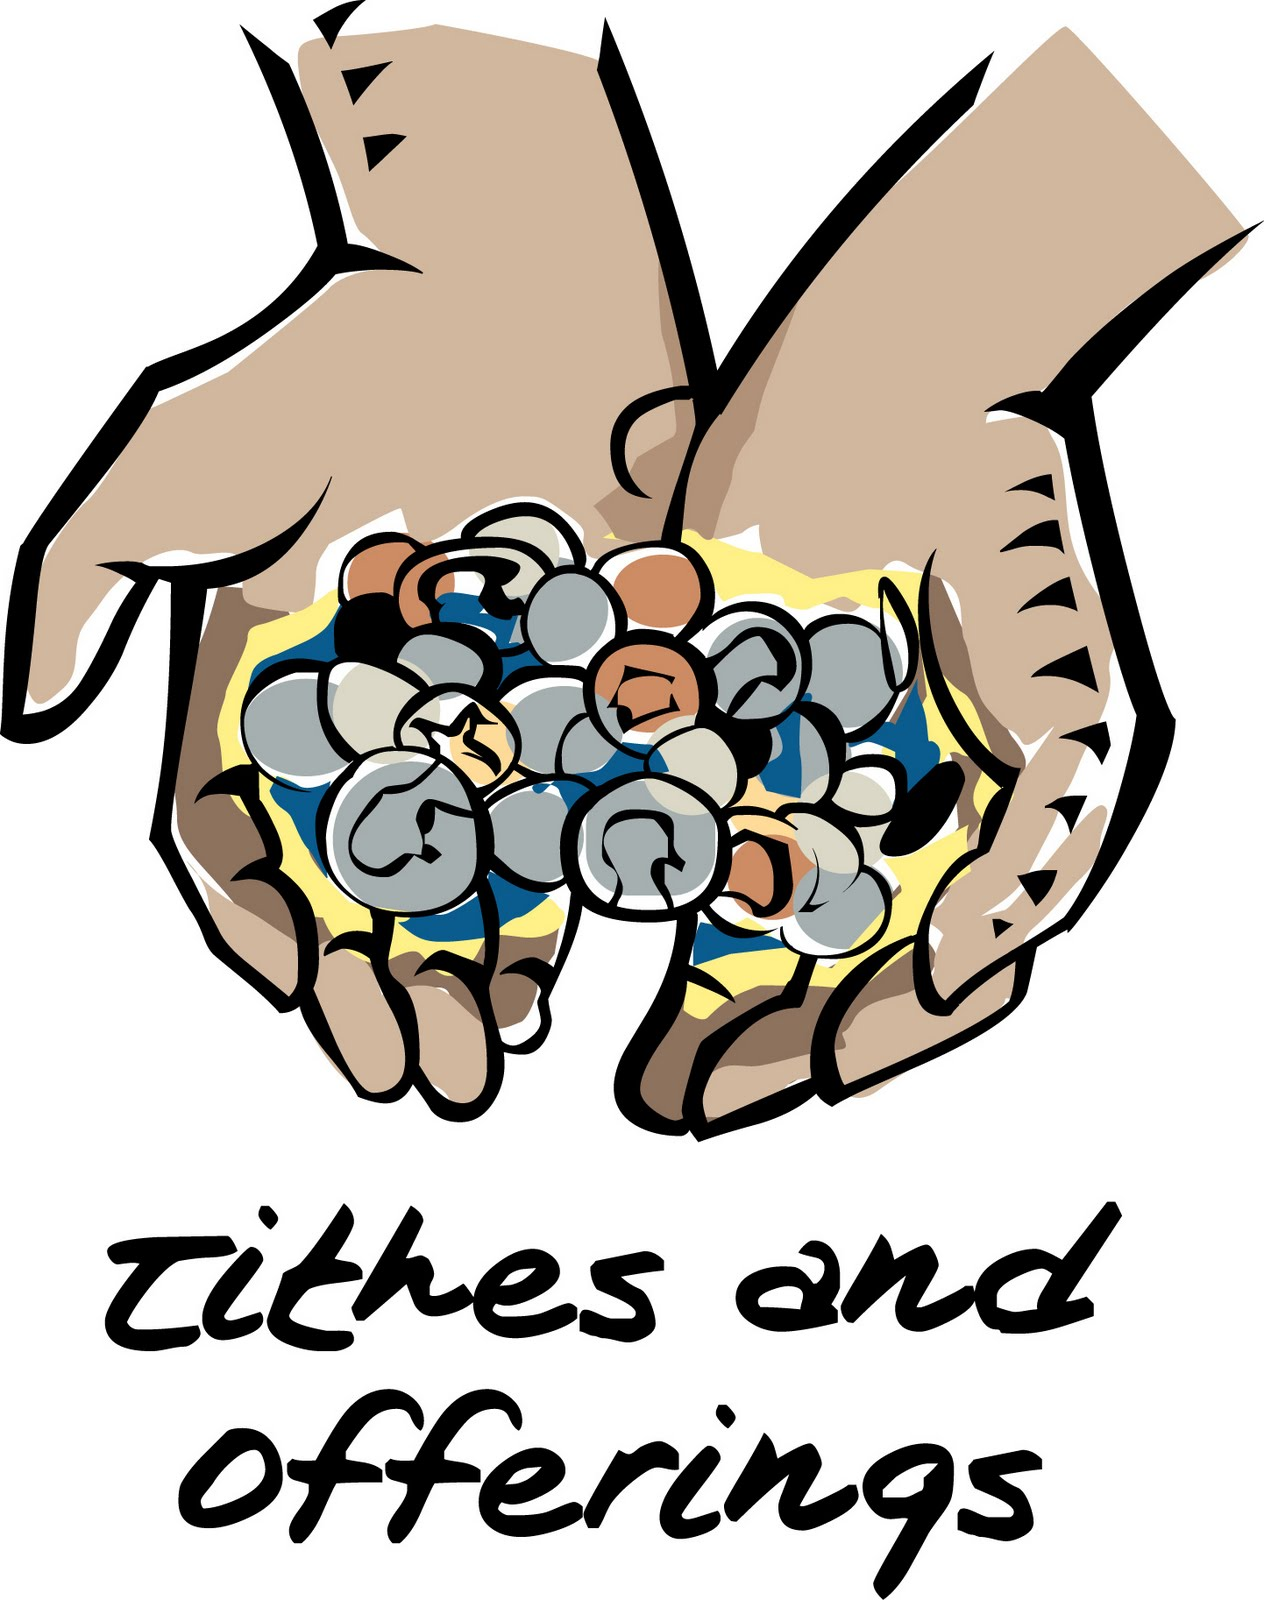 Church Tithes And Offerings Clip Art Church Giving Offering Clip